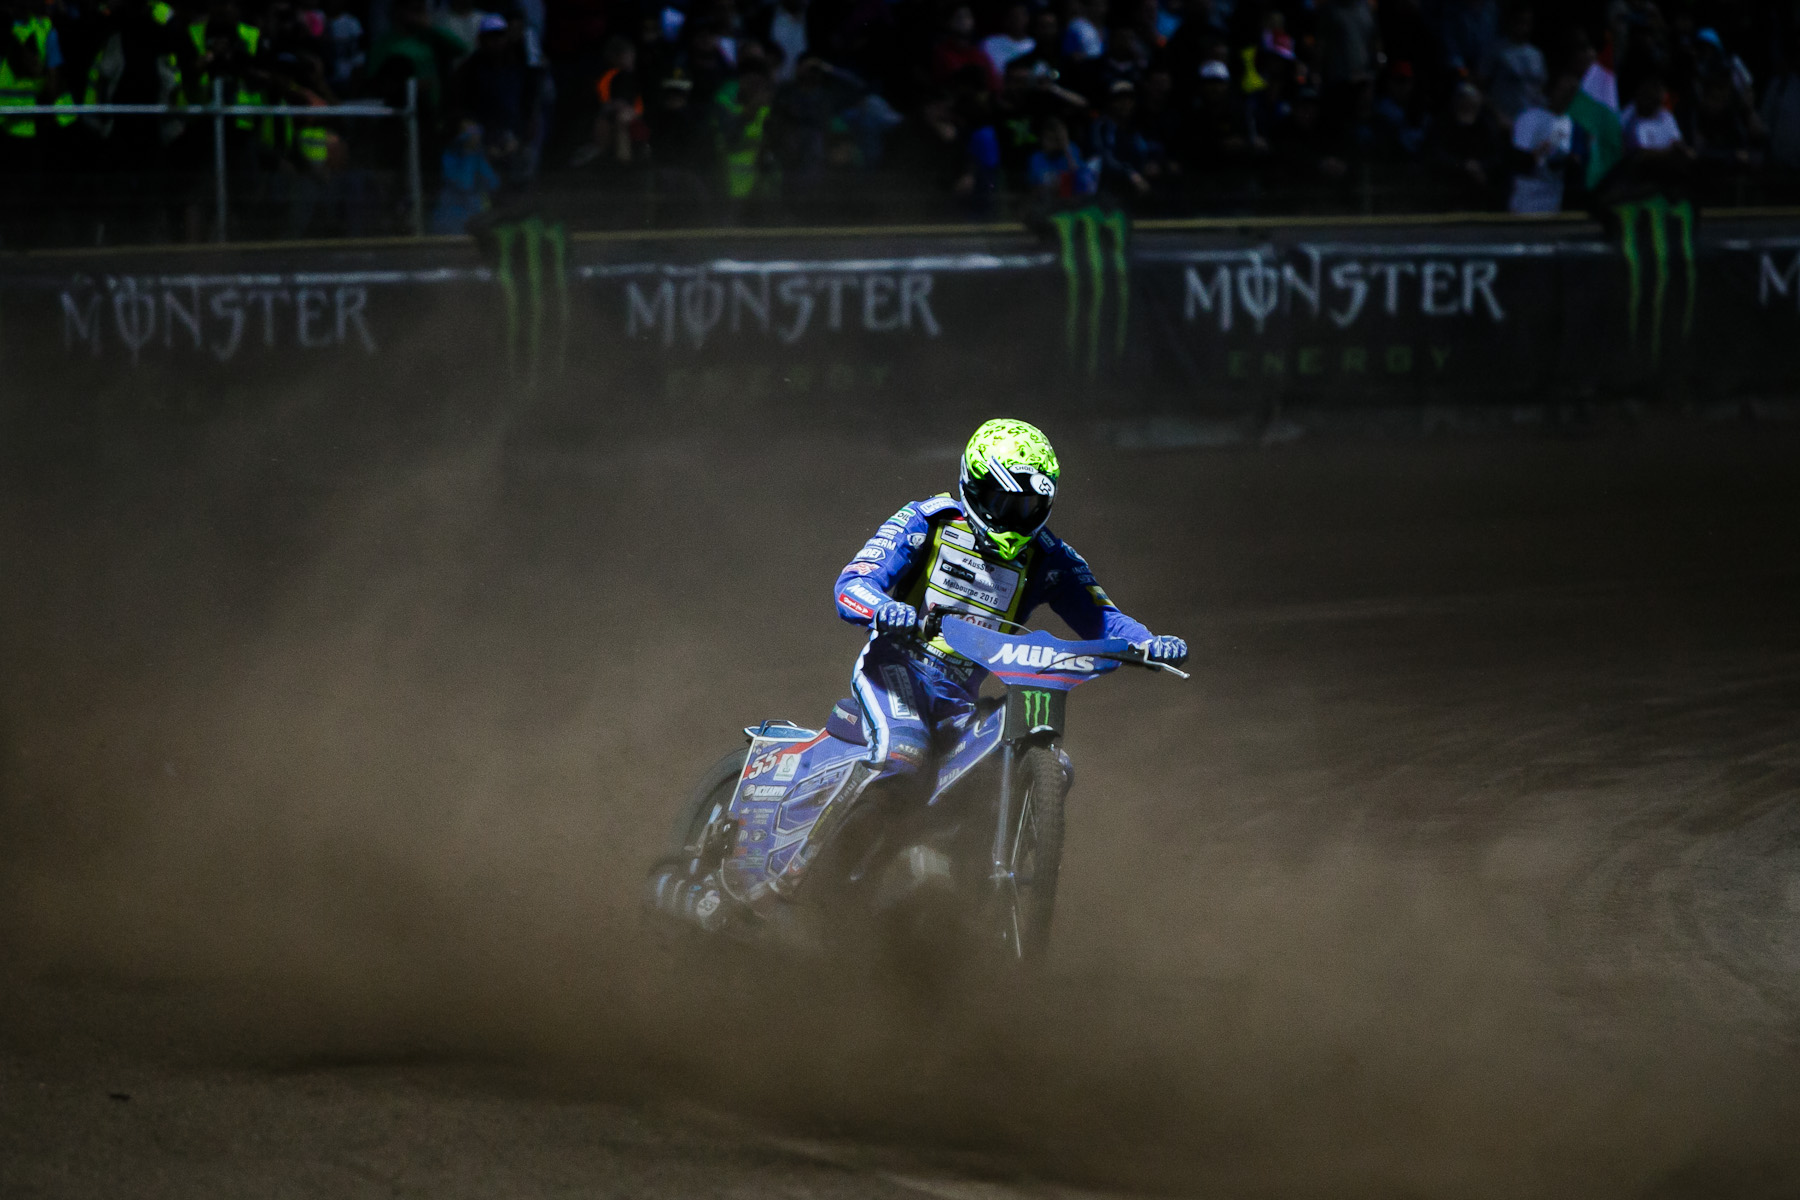 Matej Zagar of Slovenia competes in the Mitas Slovenian FIM Speedway Grand Prix at Matija Gubec Stadium in Krsko, Slovenia, Sep. 12, 2015.